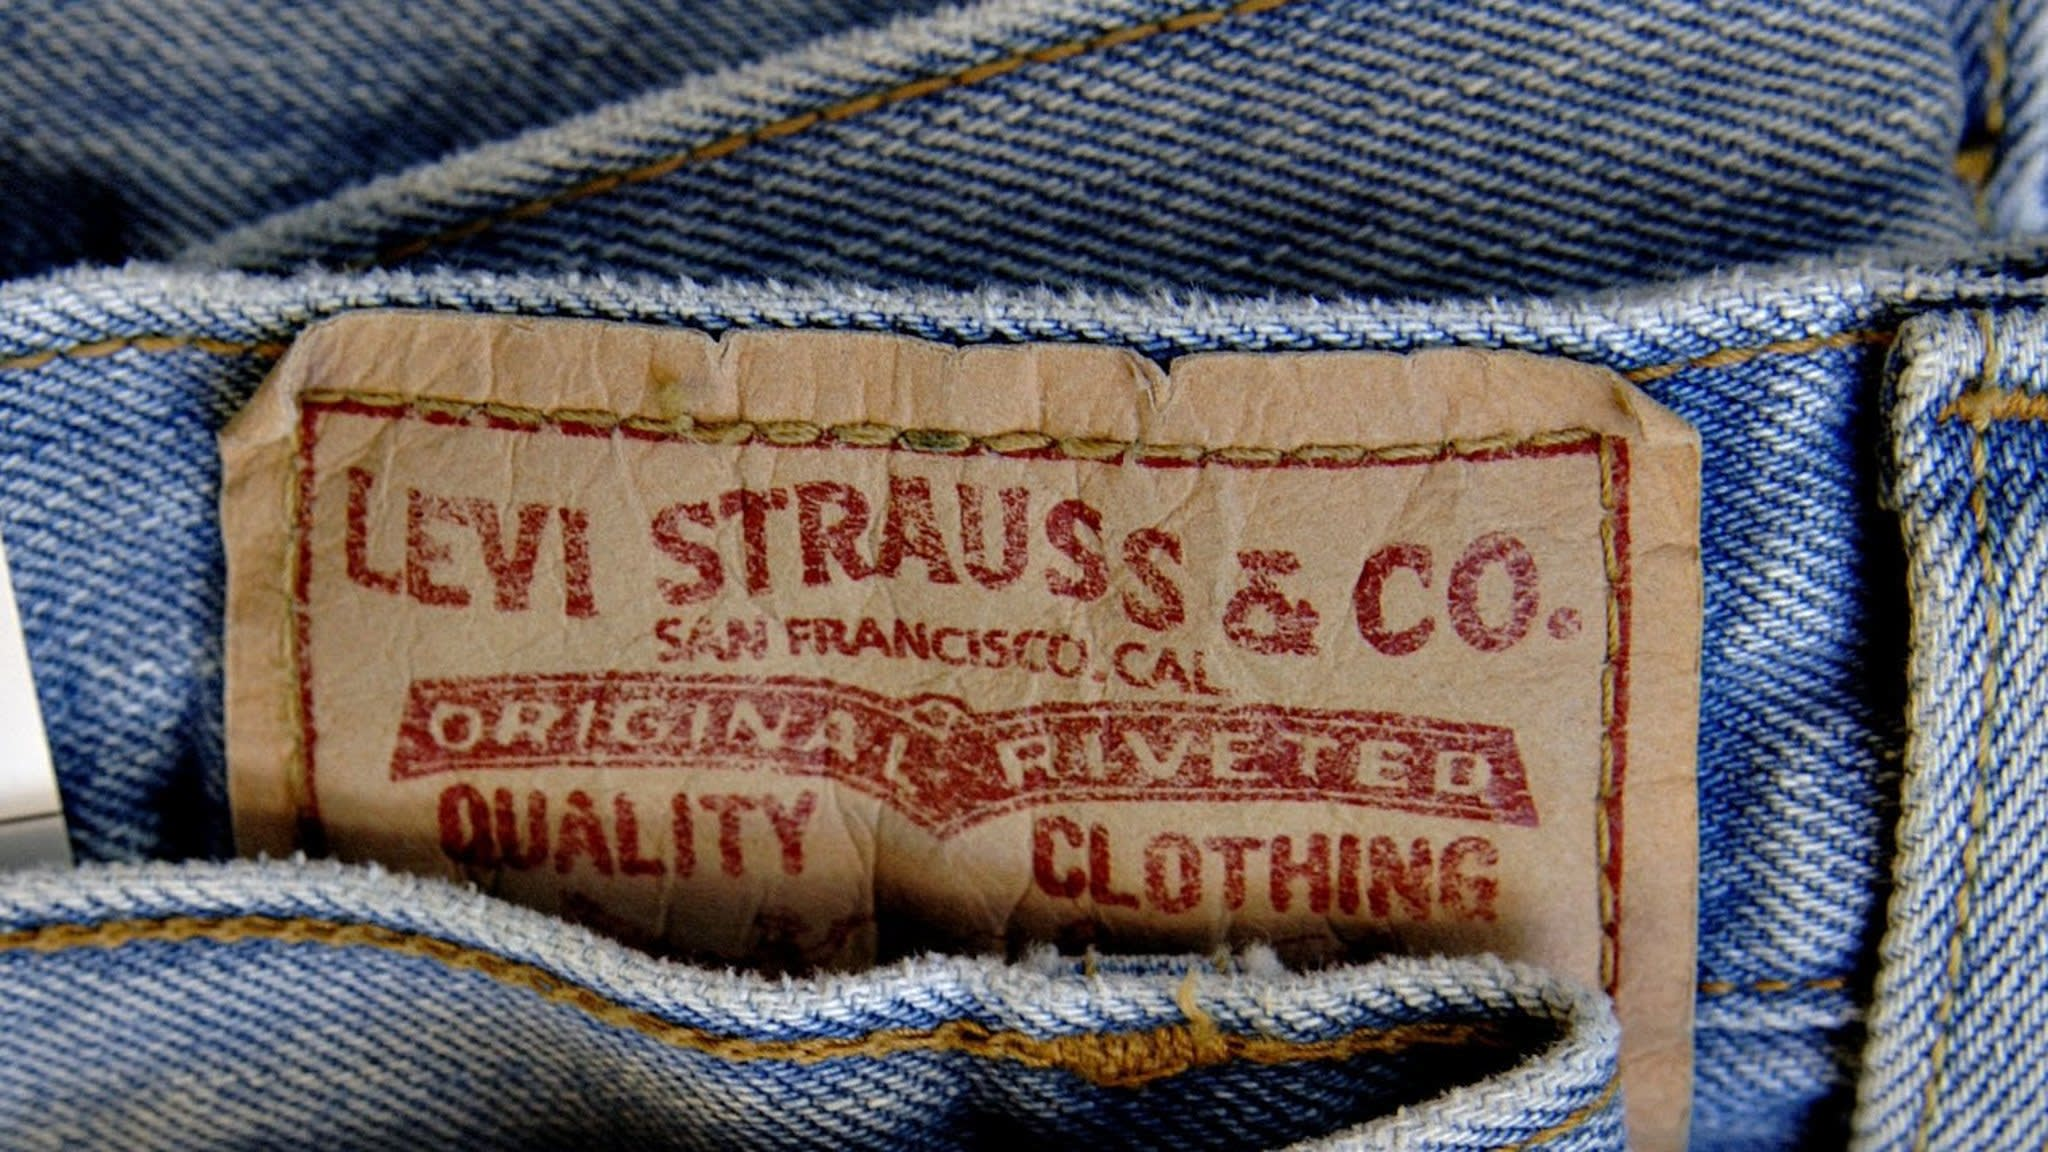 Levi Strauss to replace workers with lasers